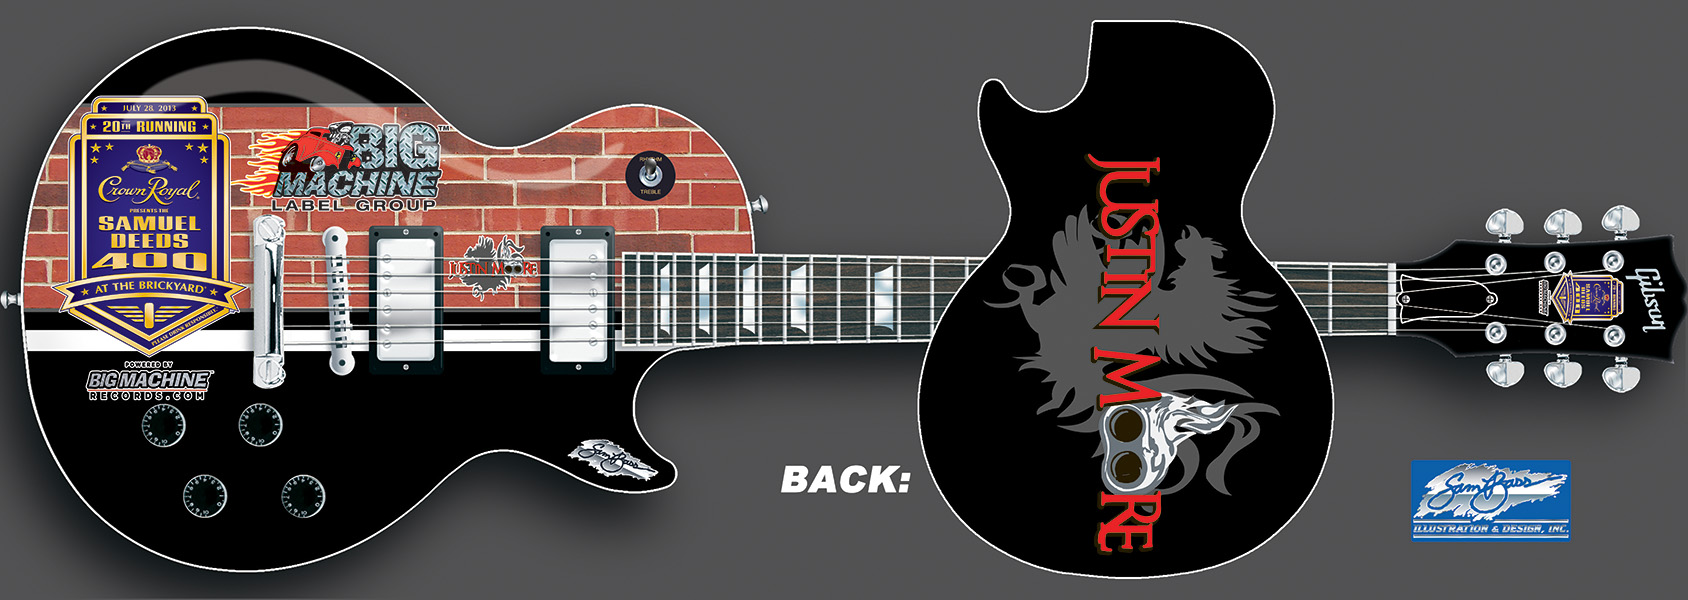 2013 Brickyard Guitar